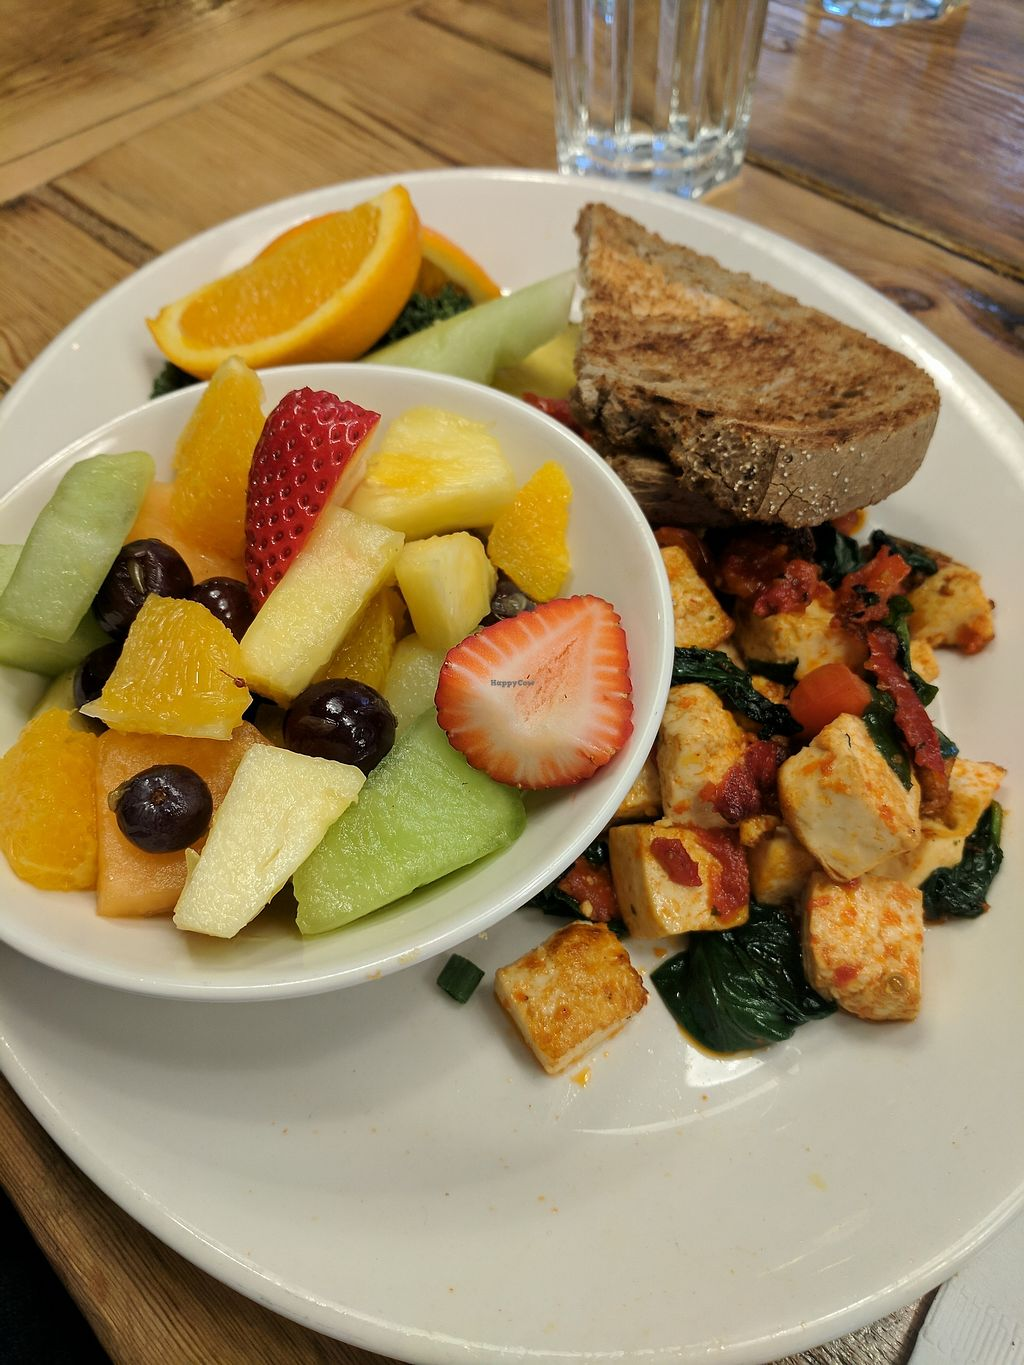 "Photo of Red's Diner  by <a href=""/members/profile/lmcc"">lmcc</a> <br/>Vegan tofu scramble with vegan rye bread and fruit  <br/> March 17, 2018  - <a href='/contact/abuse/image/114857/372153'>Report</a>"